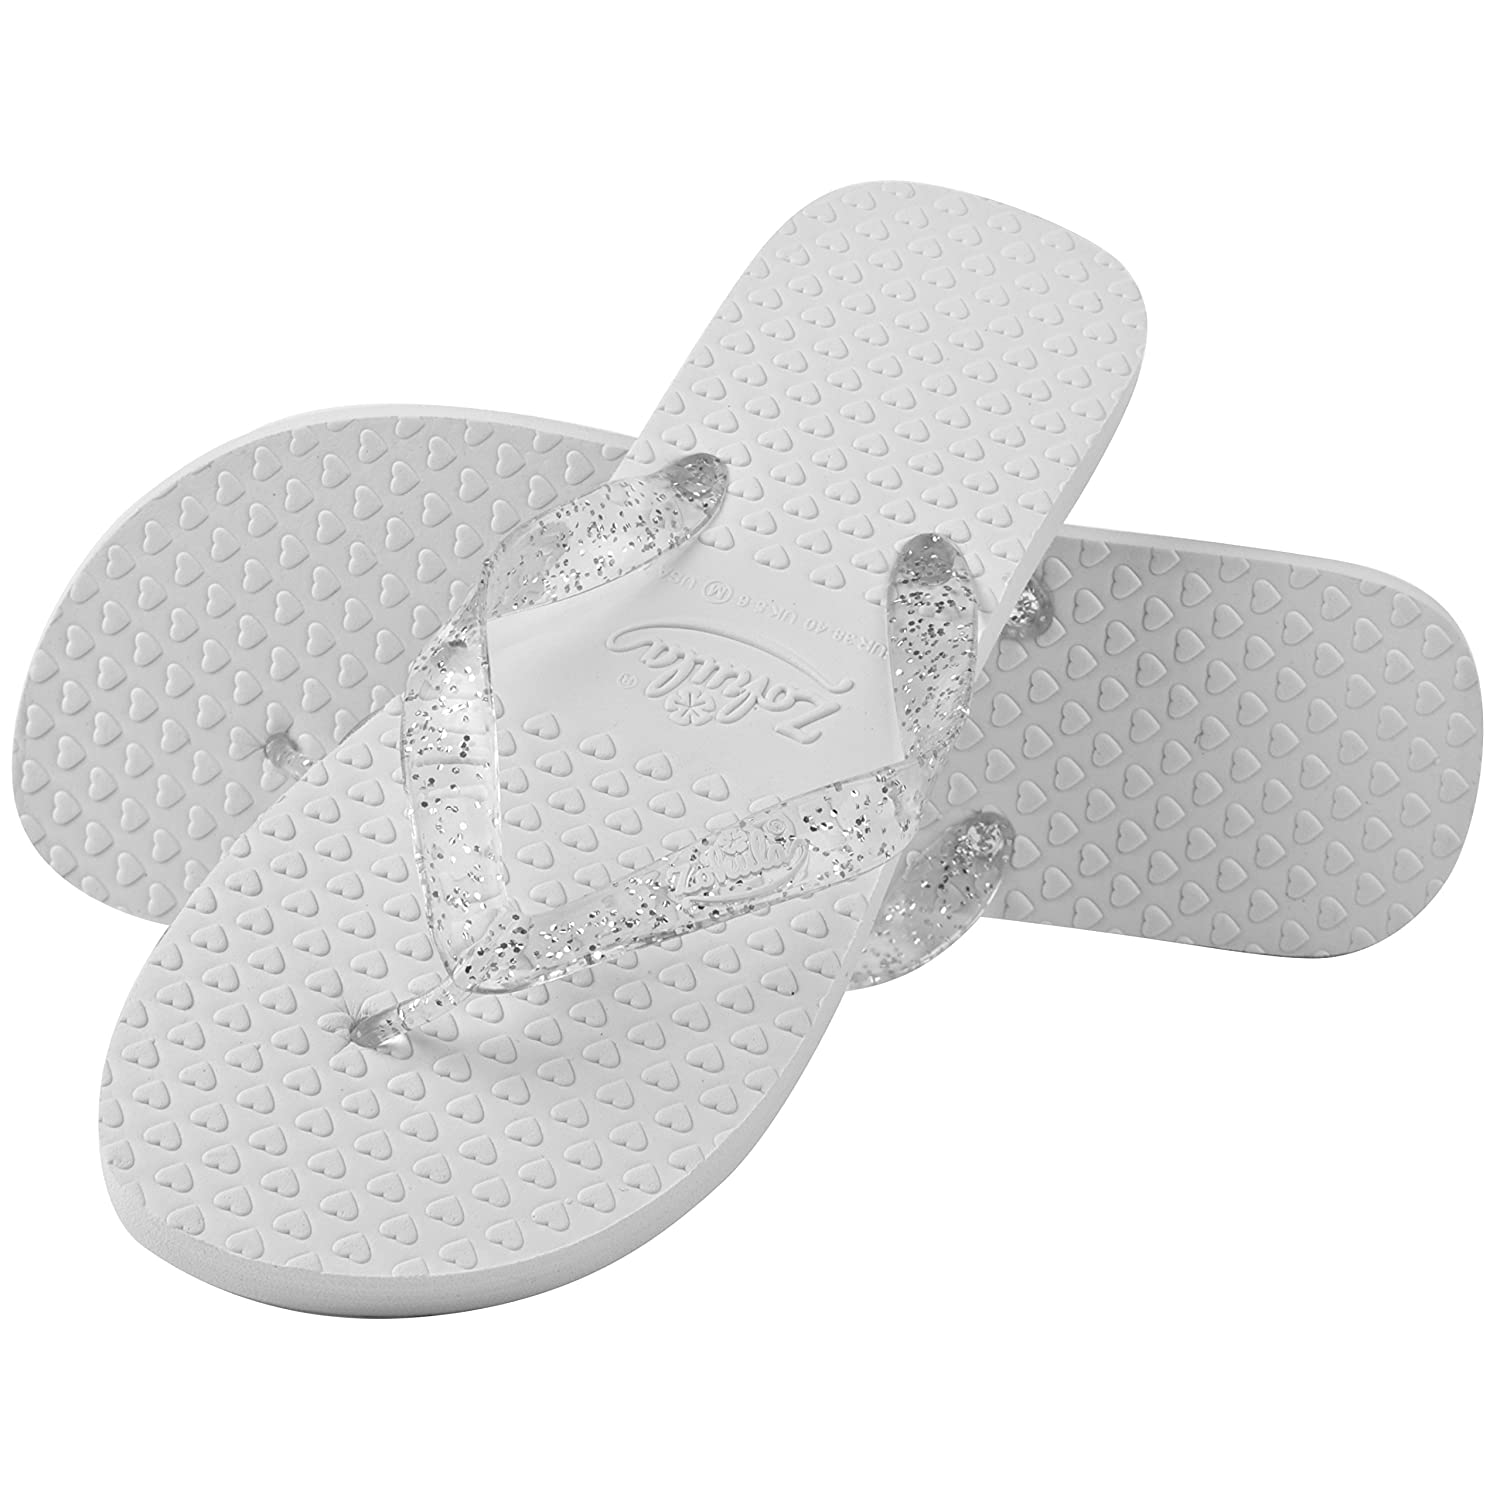 469a83752771dc Zohula Wedding Premier Flip Flops Party Pack - 20 Pairs - 3 Pairs 3-4 (S)  12 Pairs 5-6 (M) 5 Pairs 7-8 (L) - Including Basket White  Amazon.co.uk   Shoes   ...